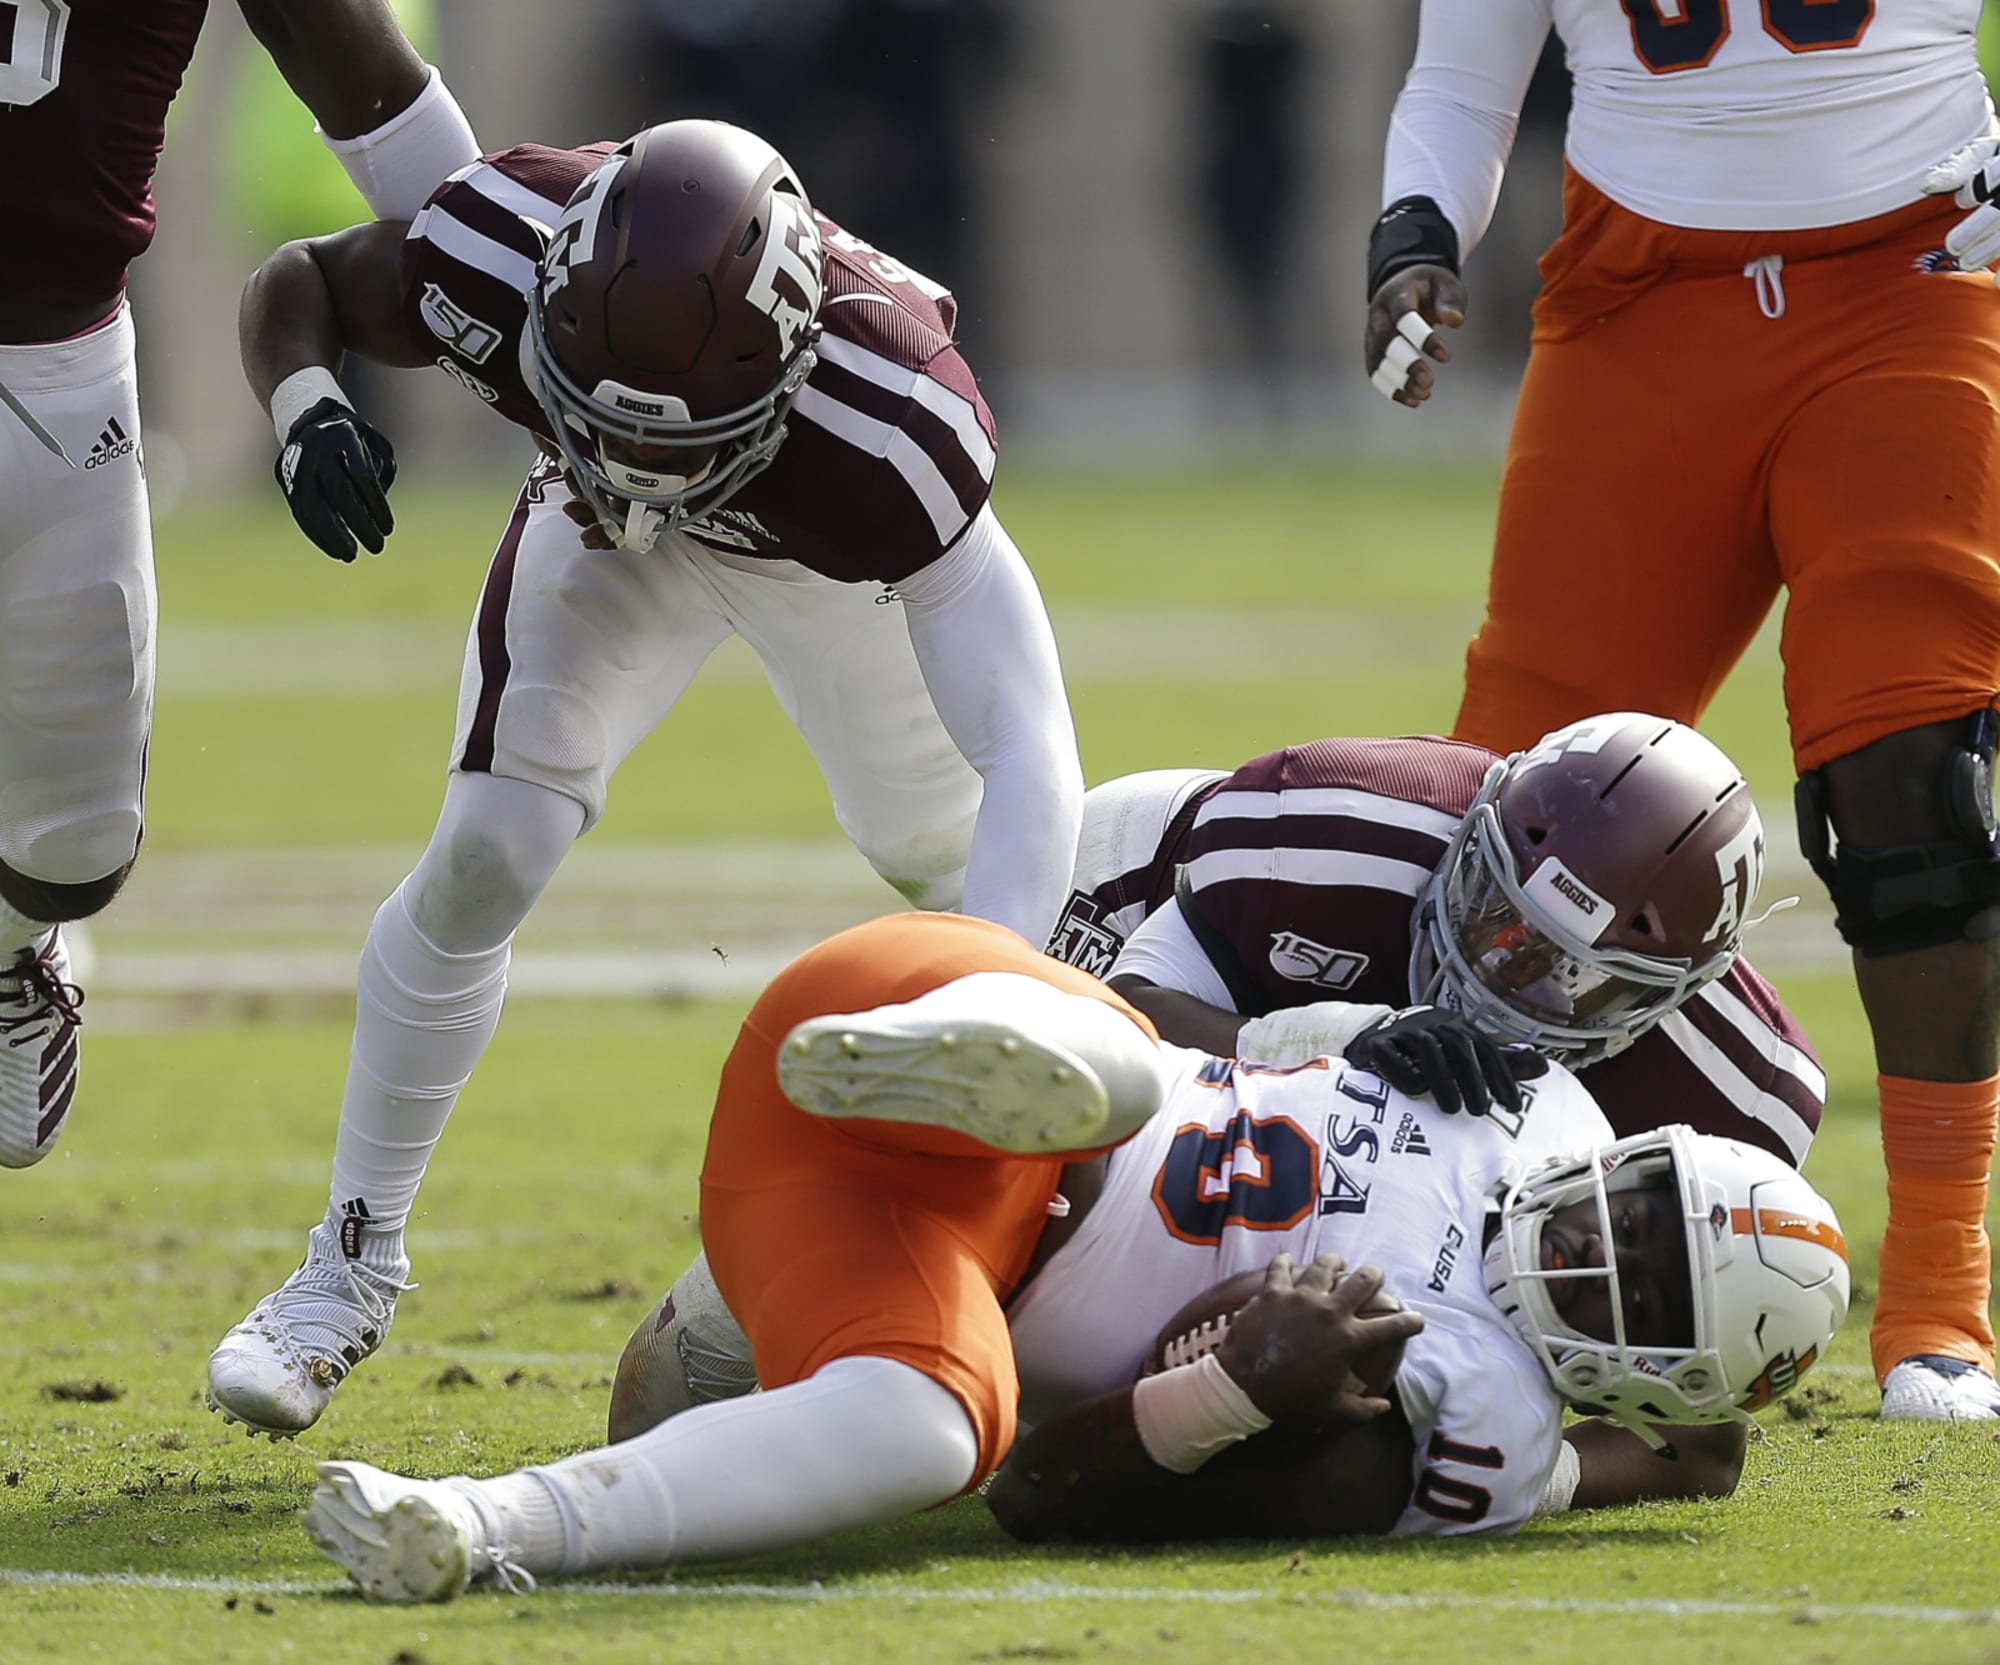 Texas A&M Football: What impact will Shemar Turner have in 2021?